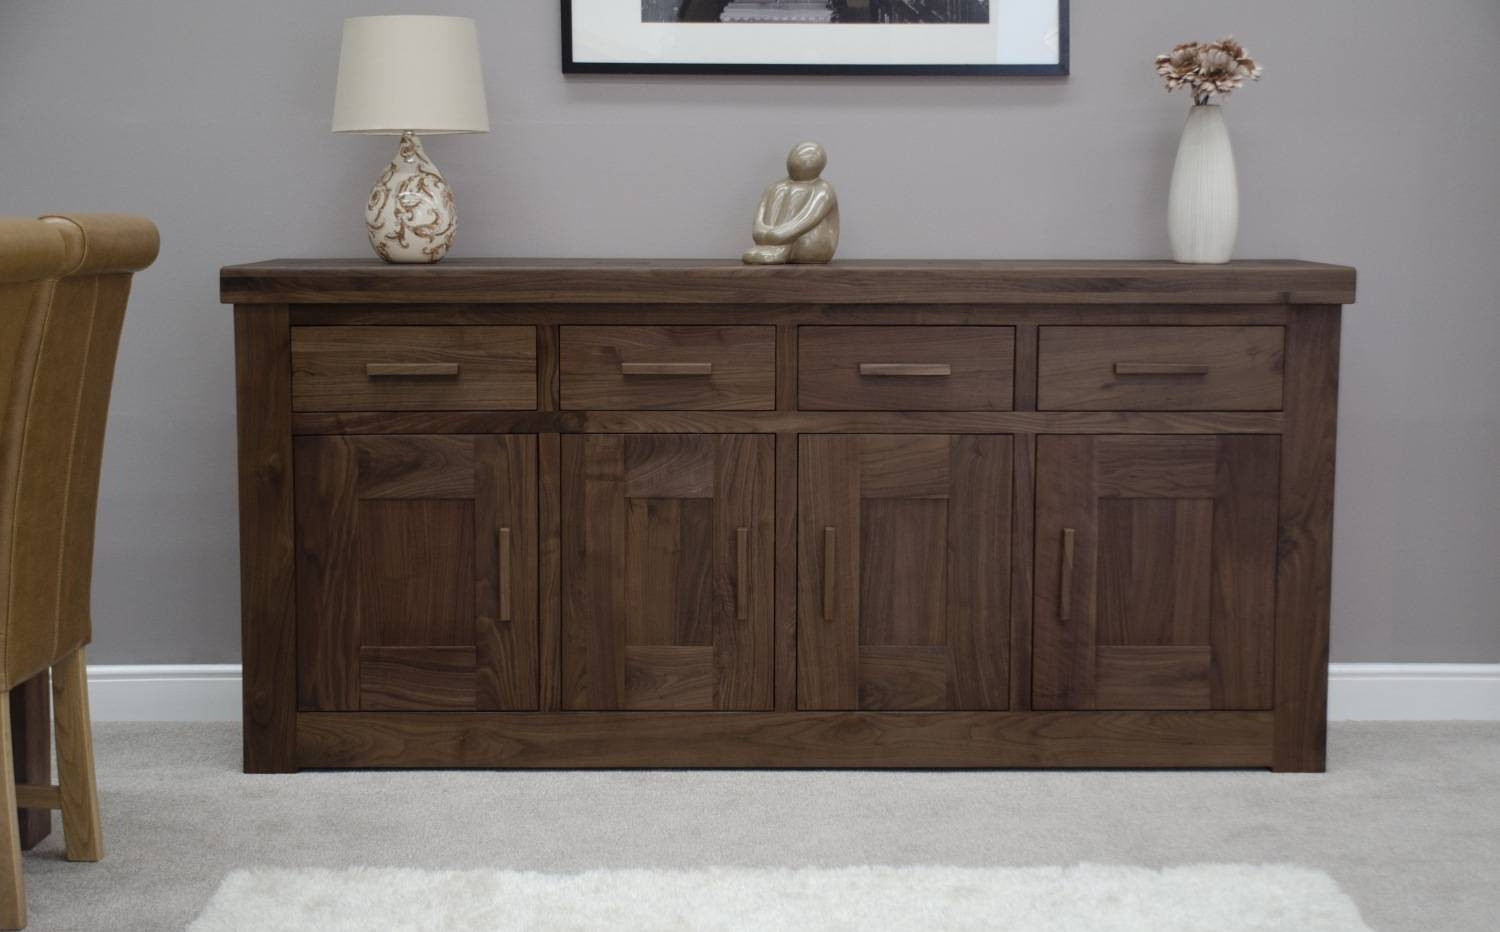 Best ideas about Dining Room Sideboard . Save or Pin 15 Ideas of Walnut and Black Sideboards Now.